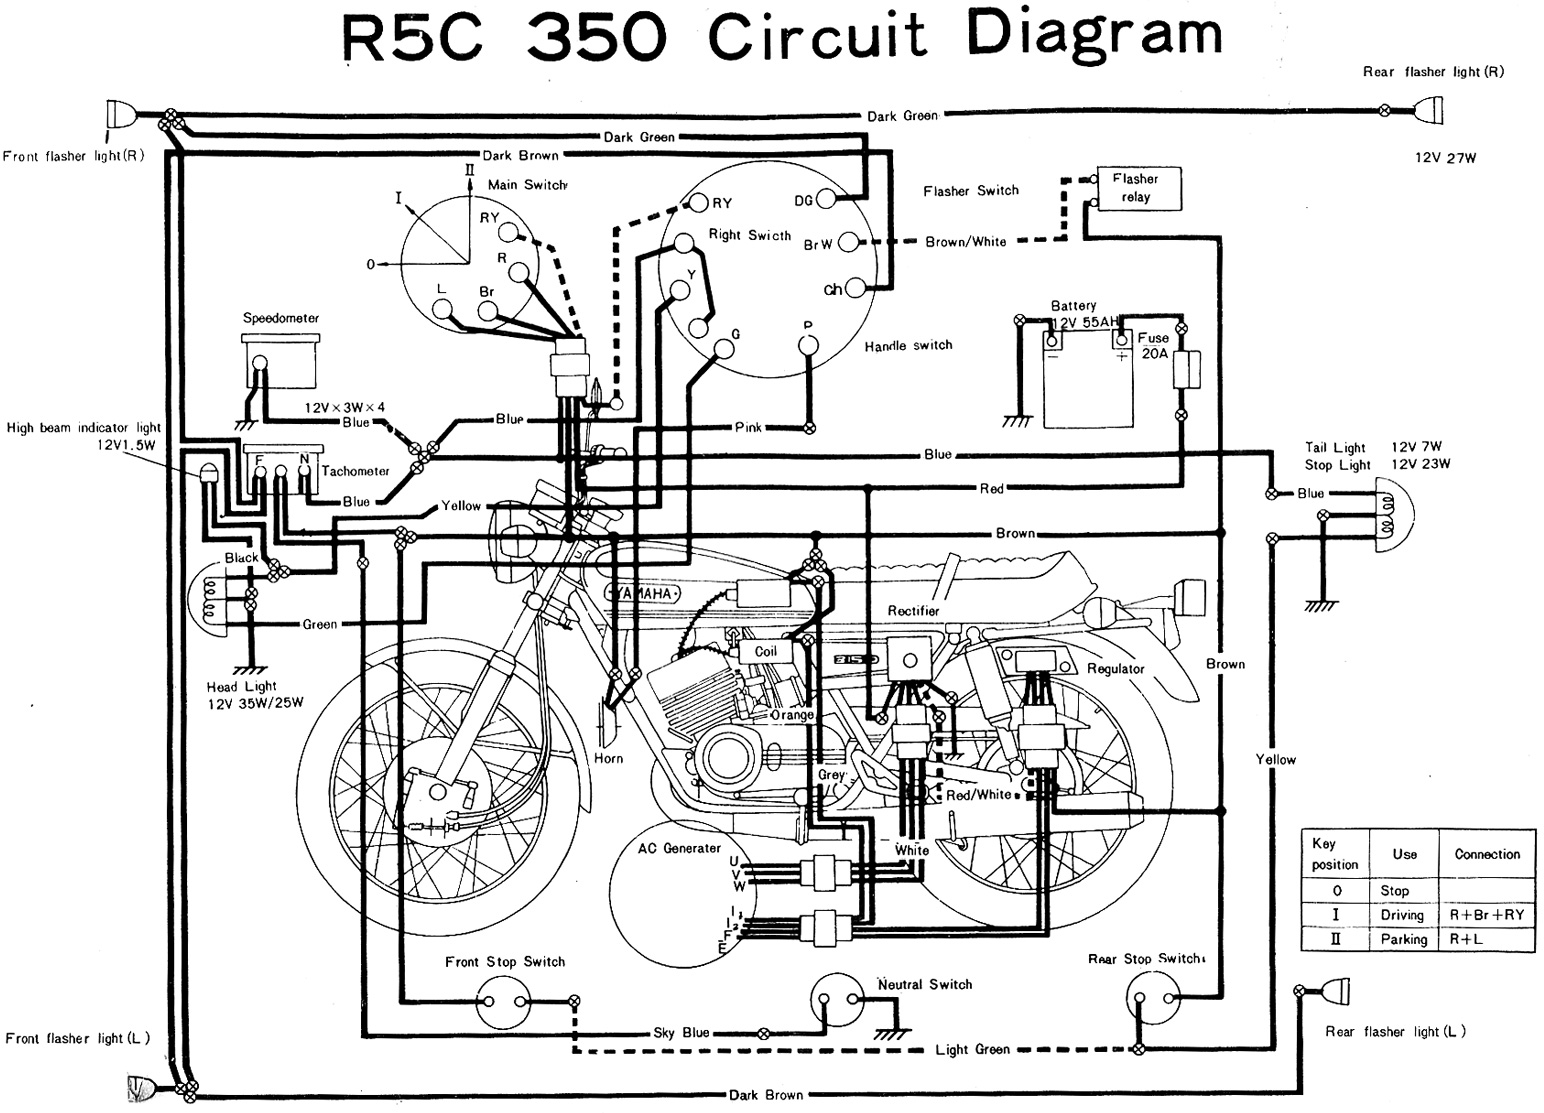 yamaha rd350 r5c wiring diagram evan fell motorcycle worksevan rh cycles evanfell com  motorcycle electric starter wiring diagram